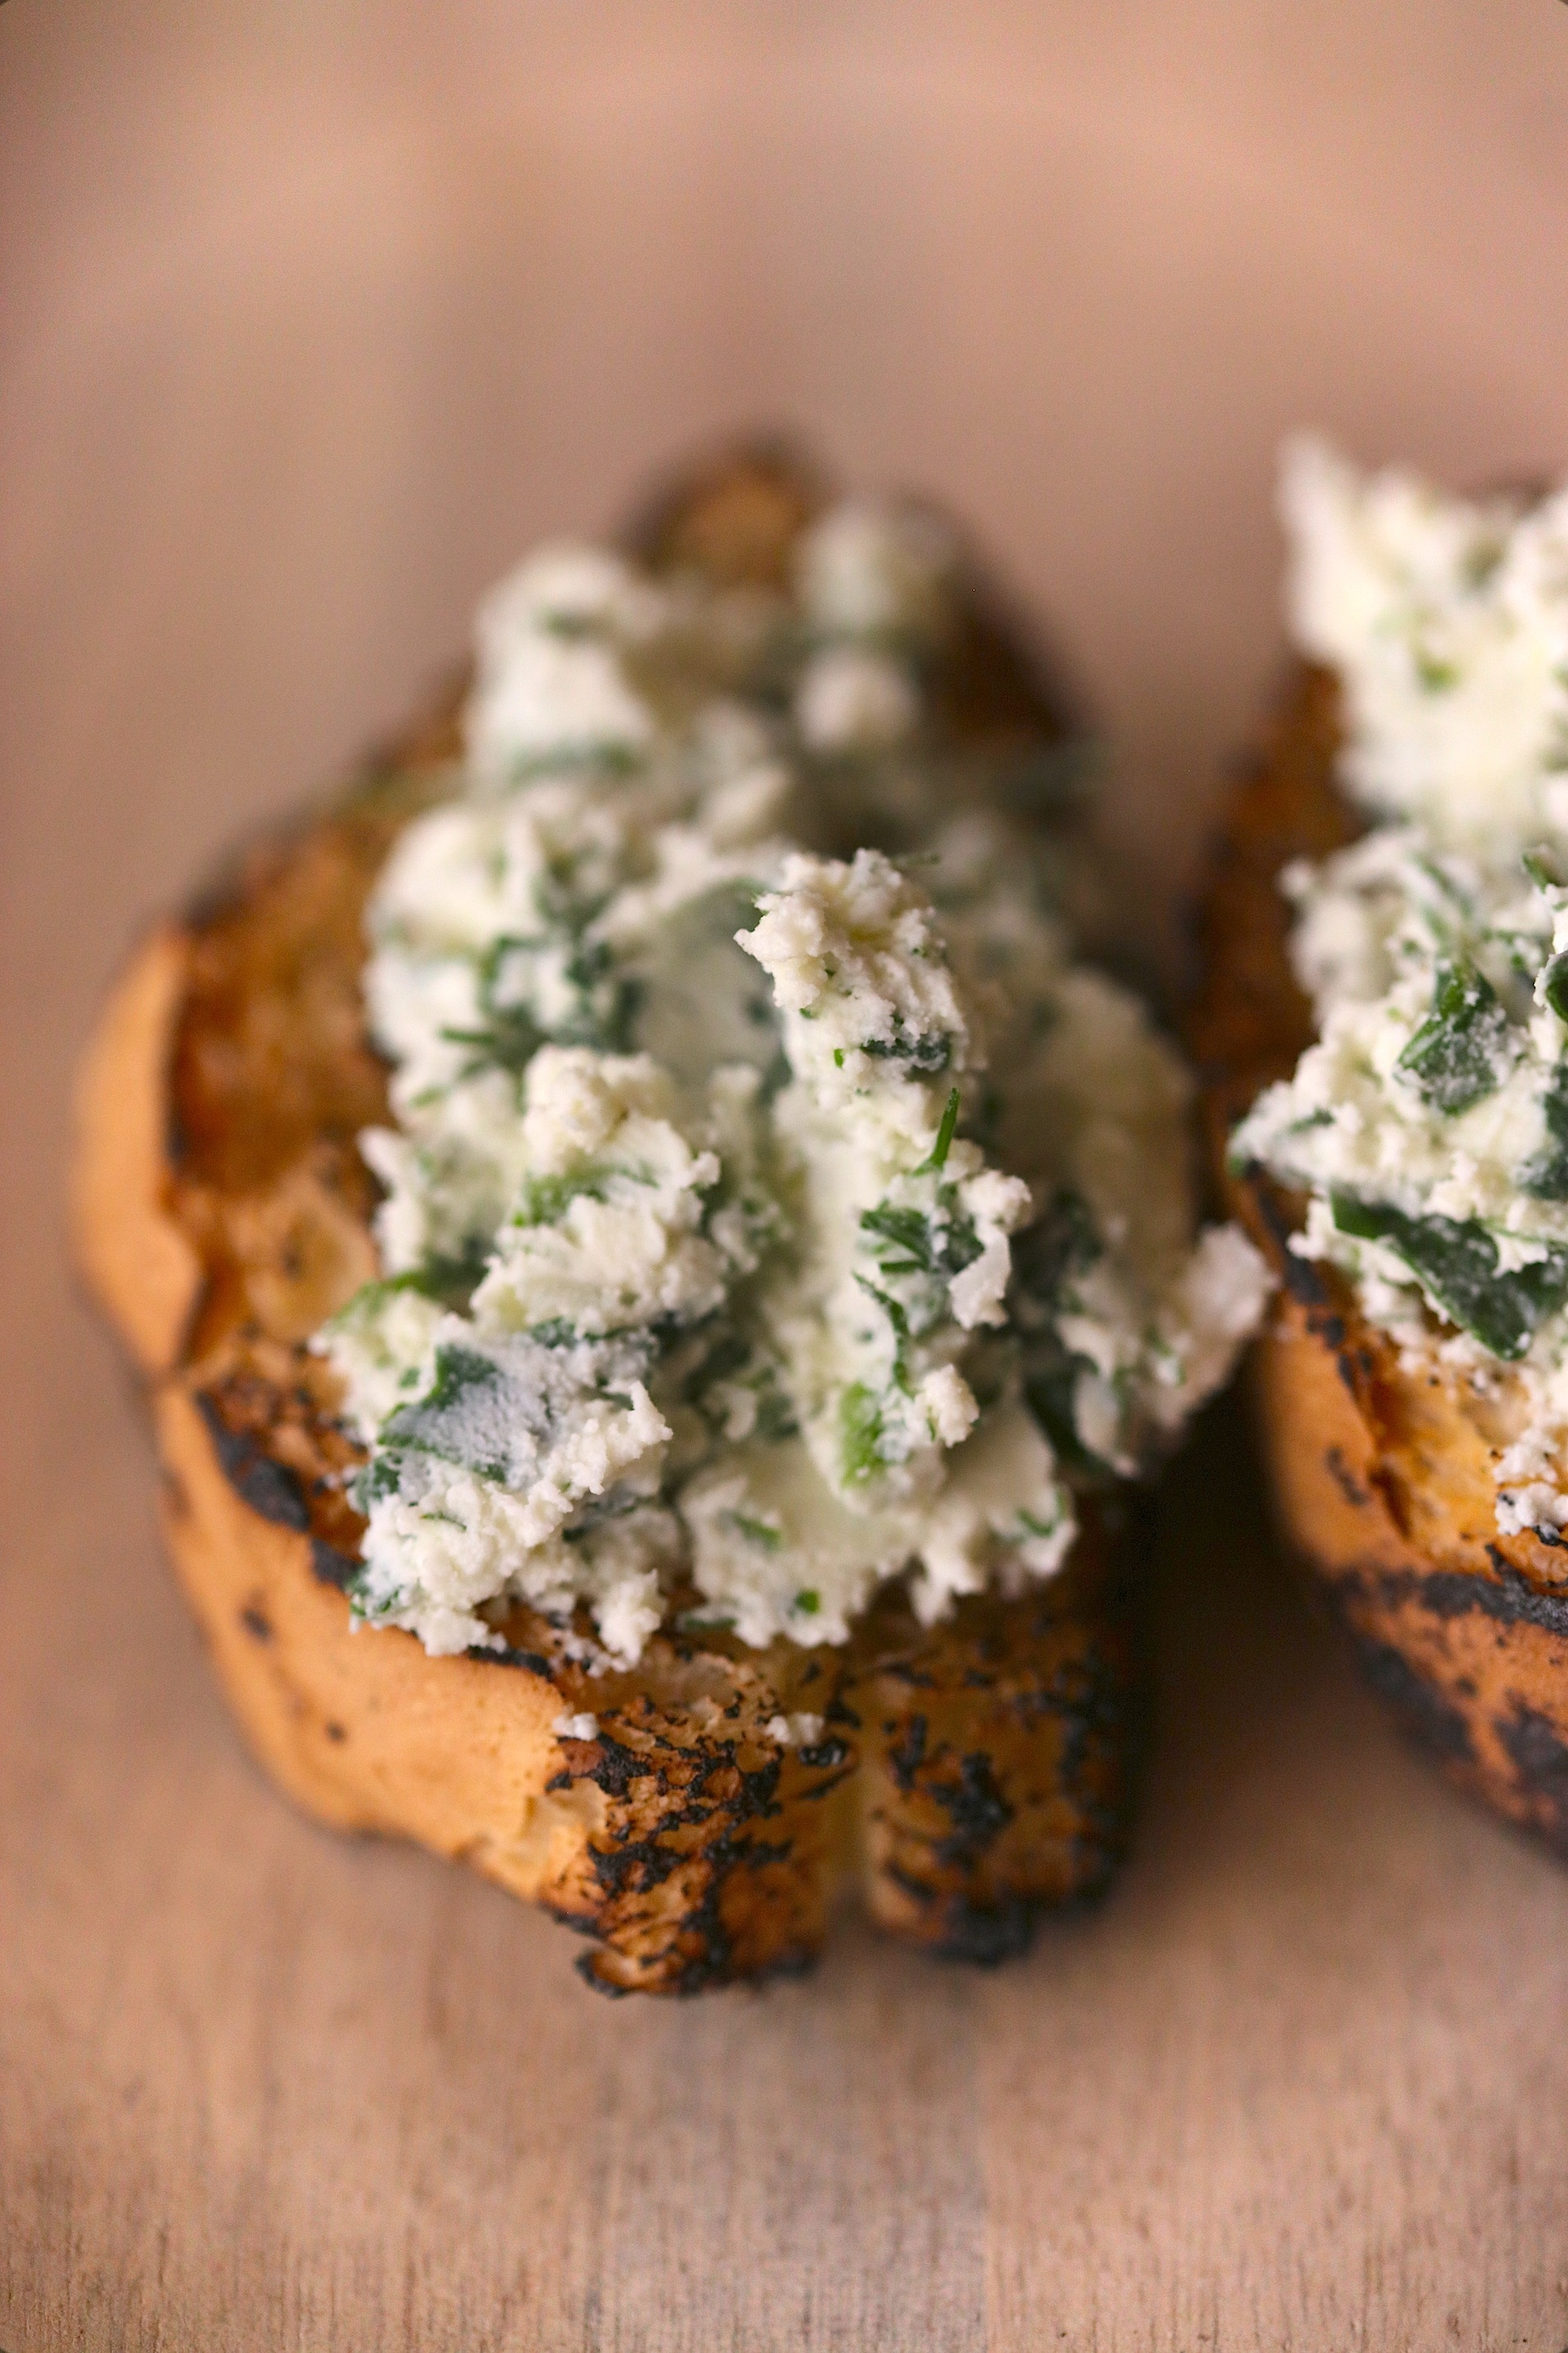 Home-made Ricotta with fresh herbs